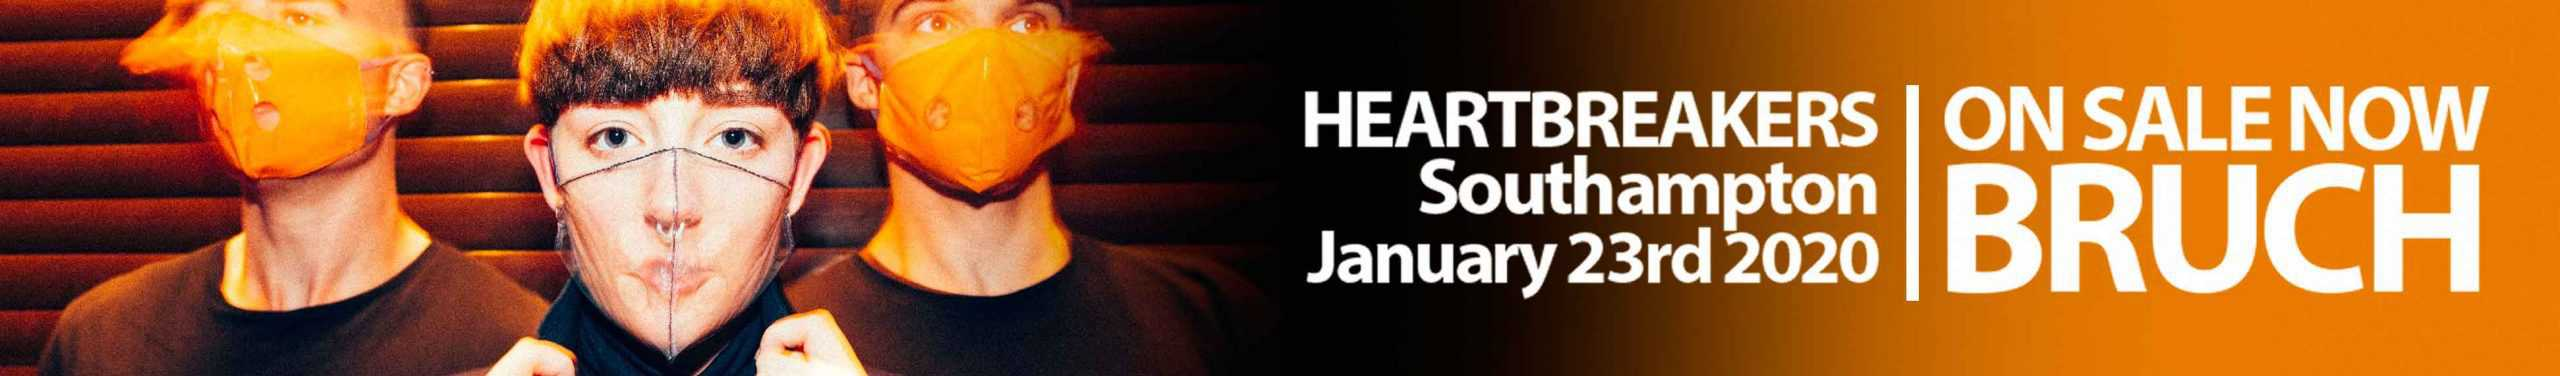 BRUCH headlines Heartbreakers Bar and Venue Southampton January 23rd 2020 Book Now